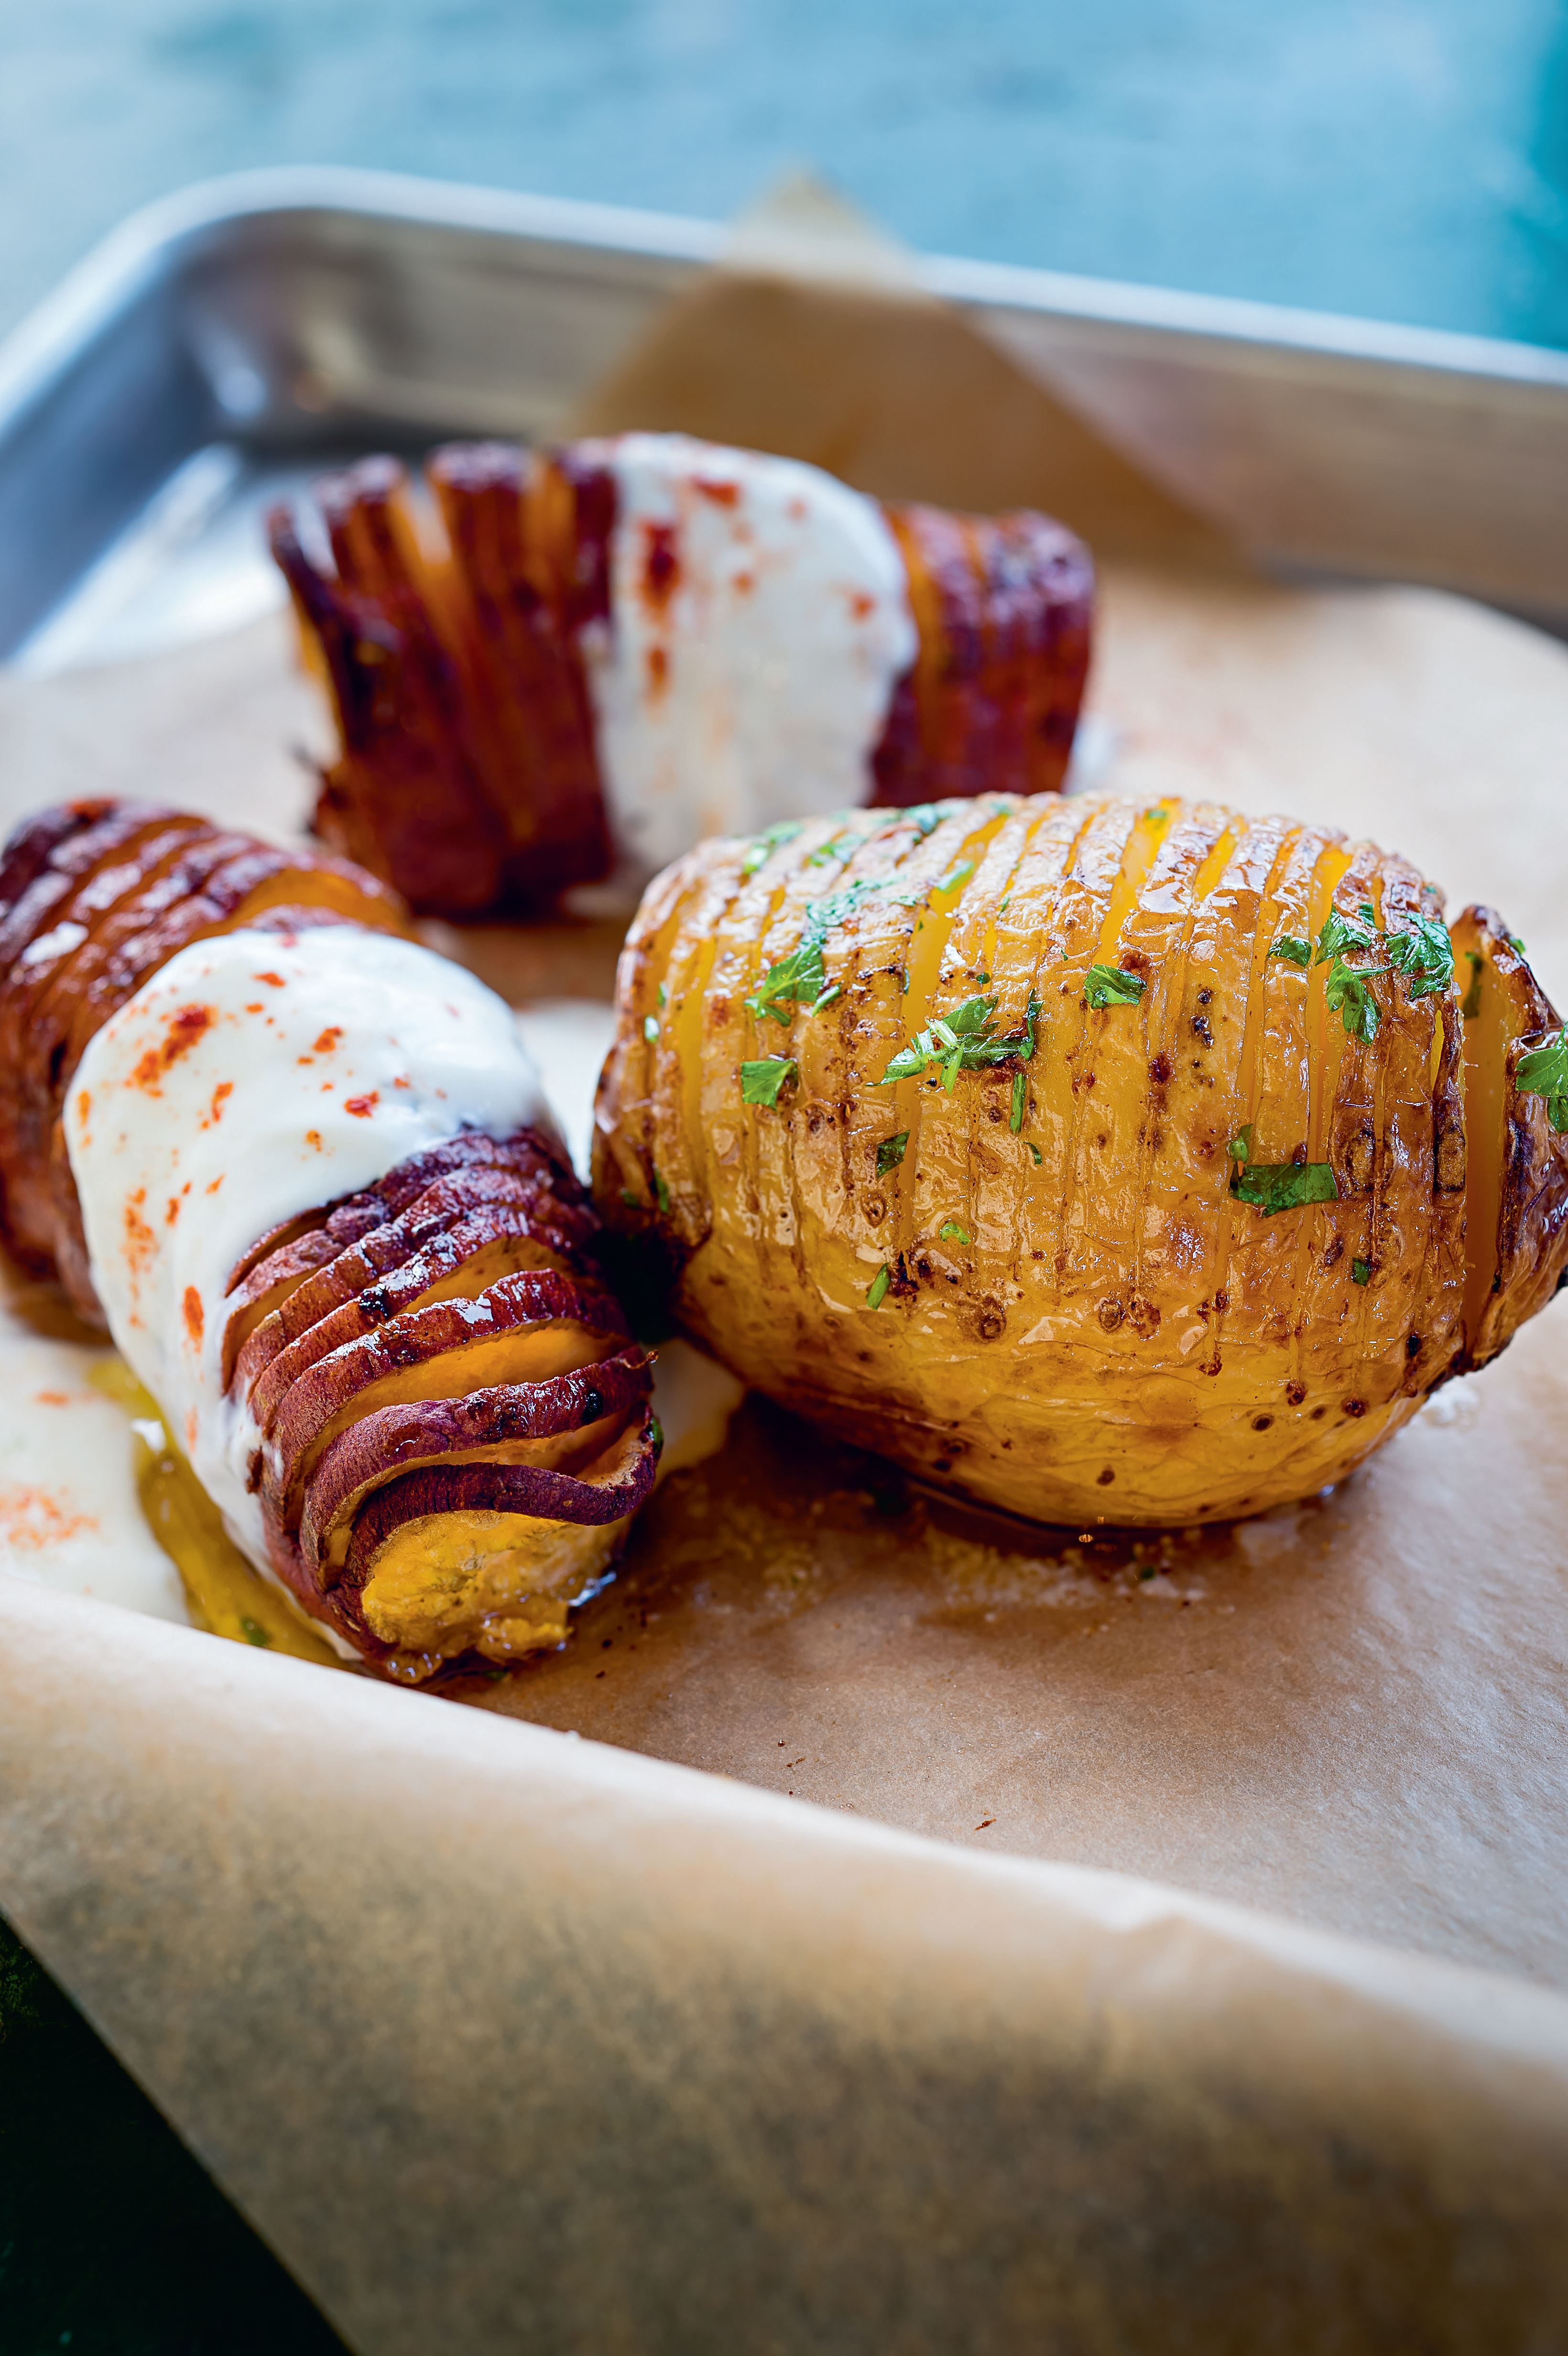 Hasselback potatoes with brown butter